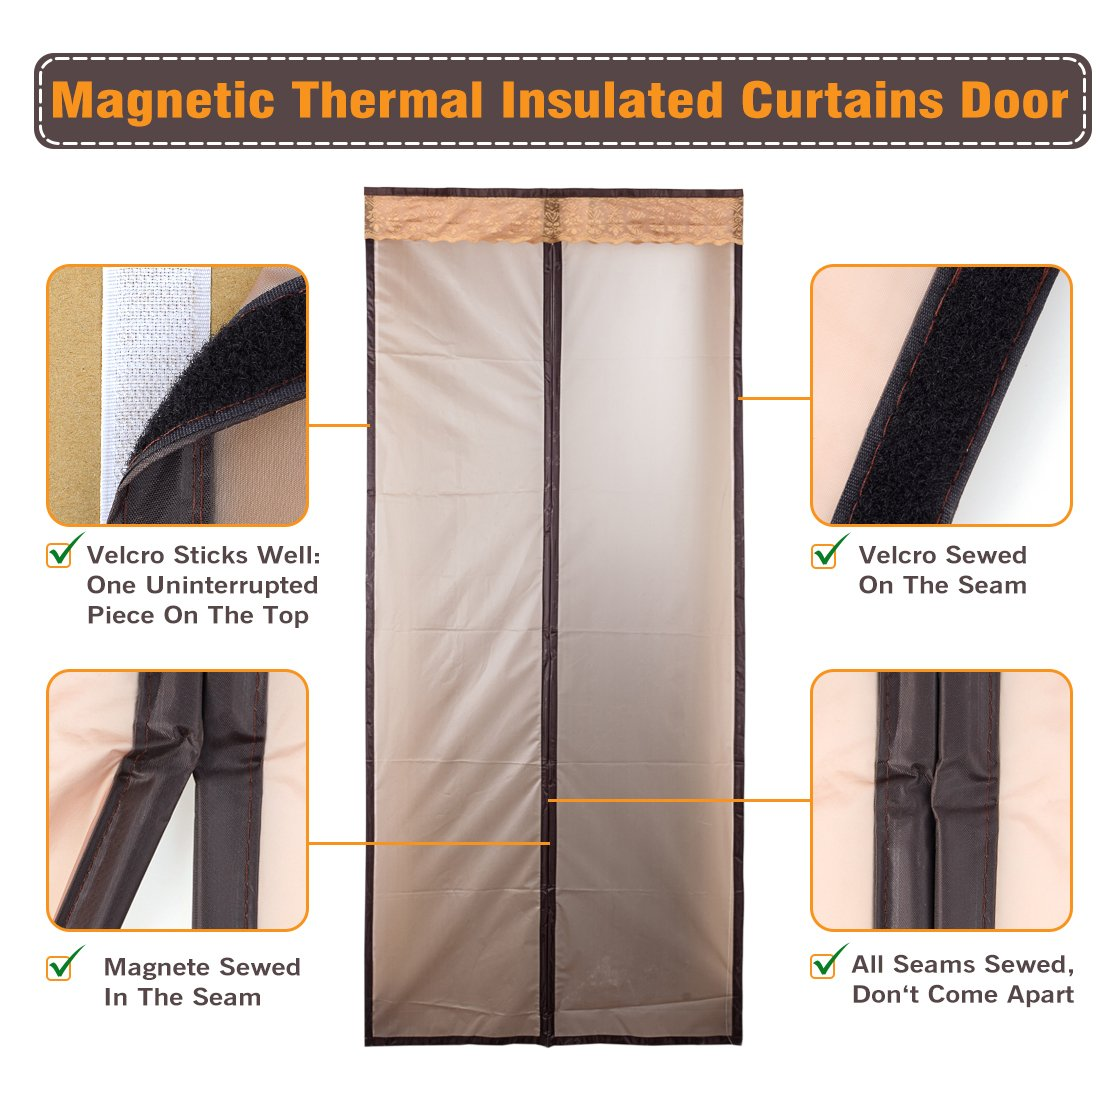 Magnetic thermal insulated door curtain enjoy your cool summer and magnetic thermal insulated door curtain enjoy your cool summer and warm winter with saving you money door curtain auto closer fits doors up to 34 x 82 rubansaba